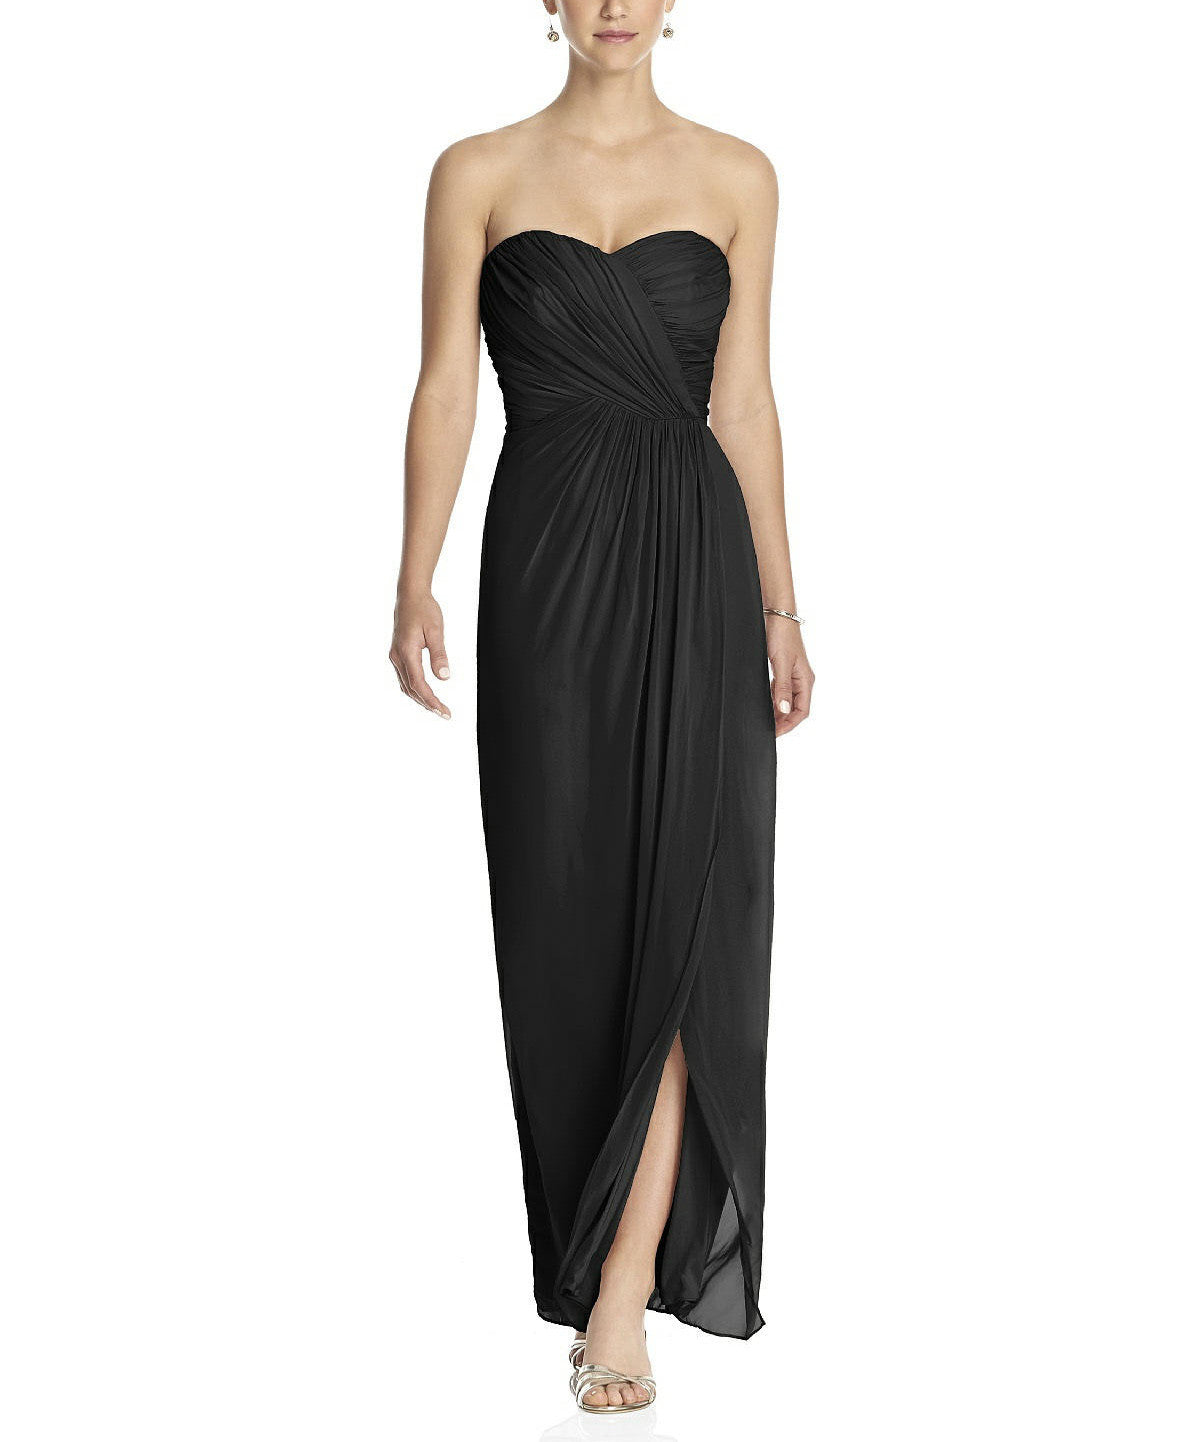 Dessy collection style 2882 quickship bridesmaid dress brideside dessy collection style 2882 quickship ombrellifo Gallery